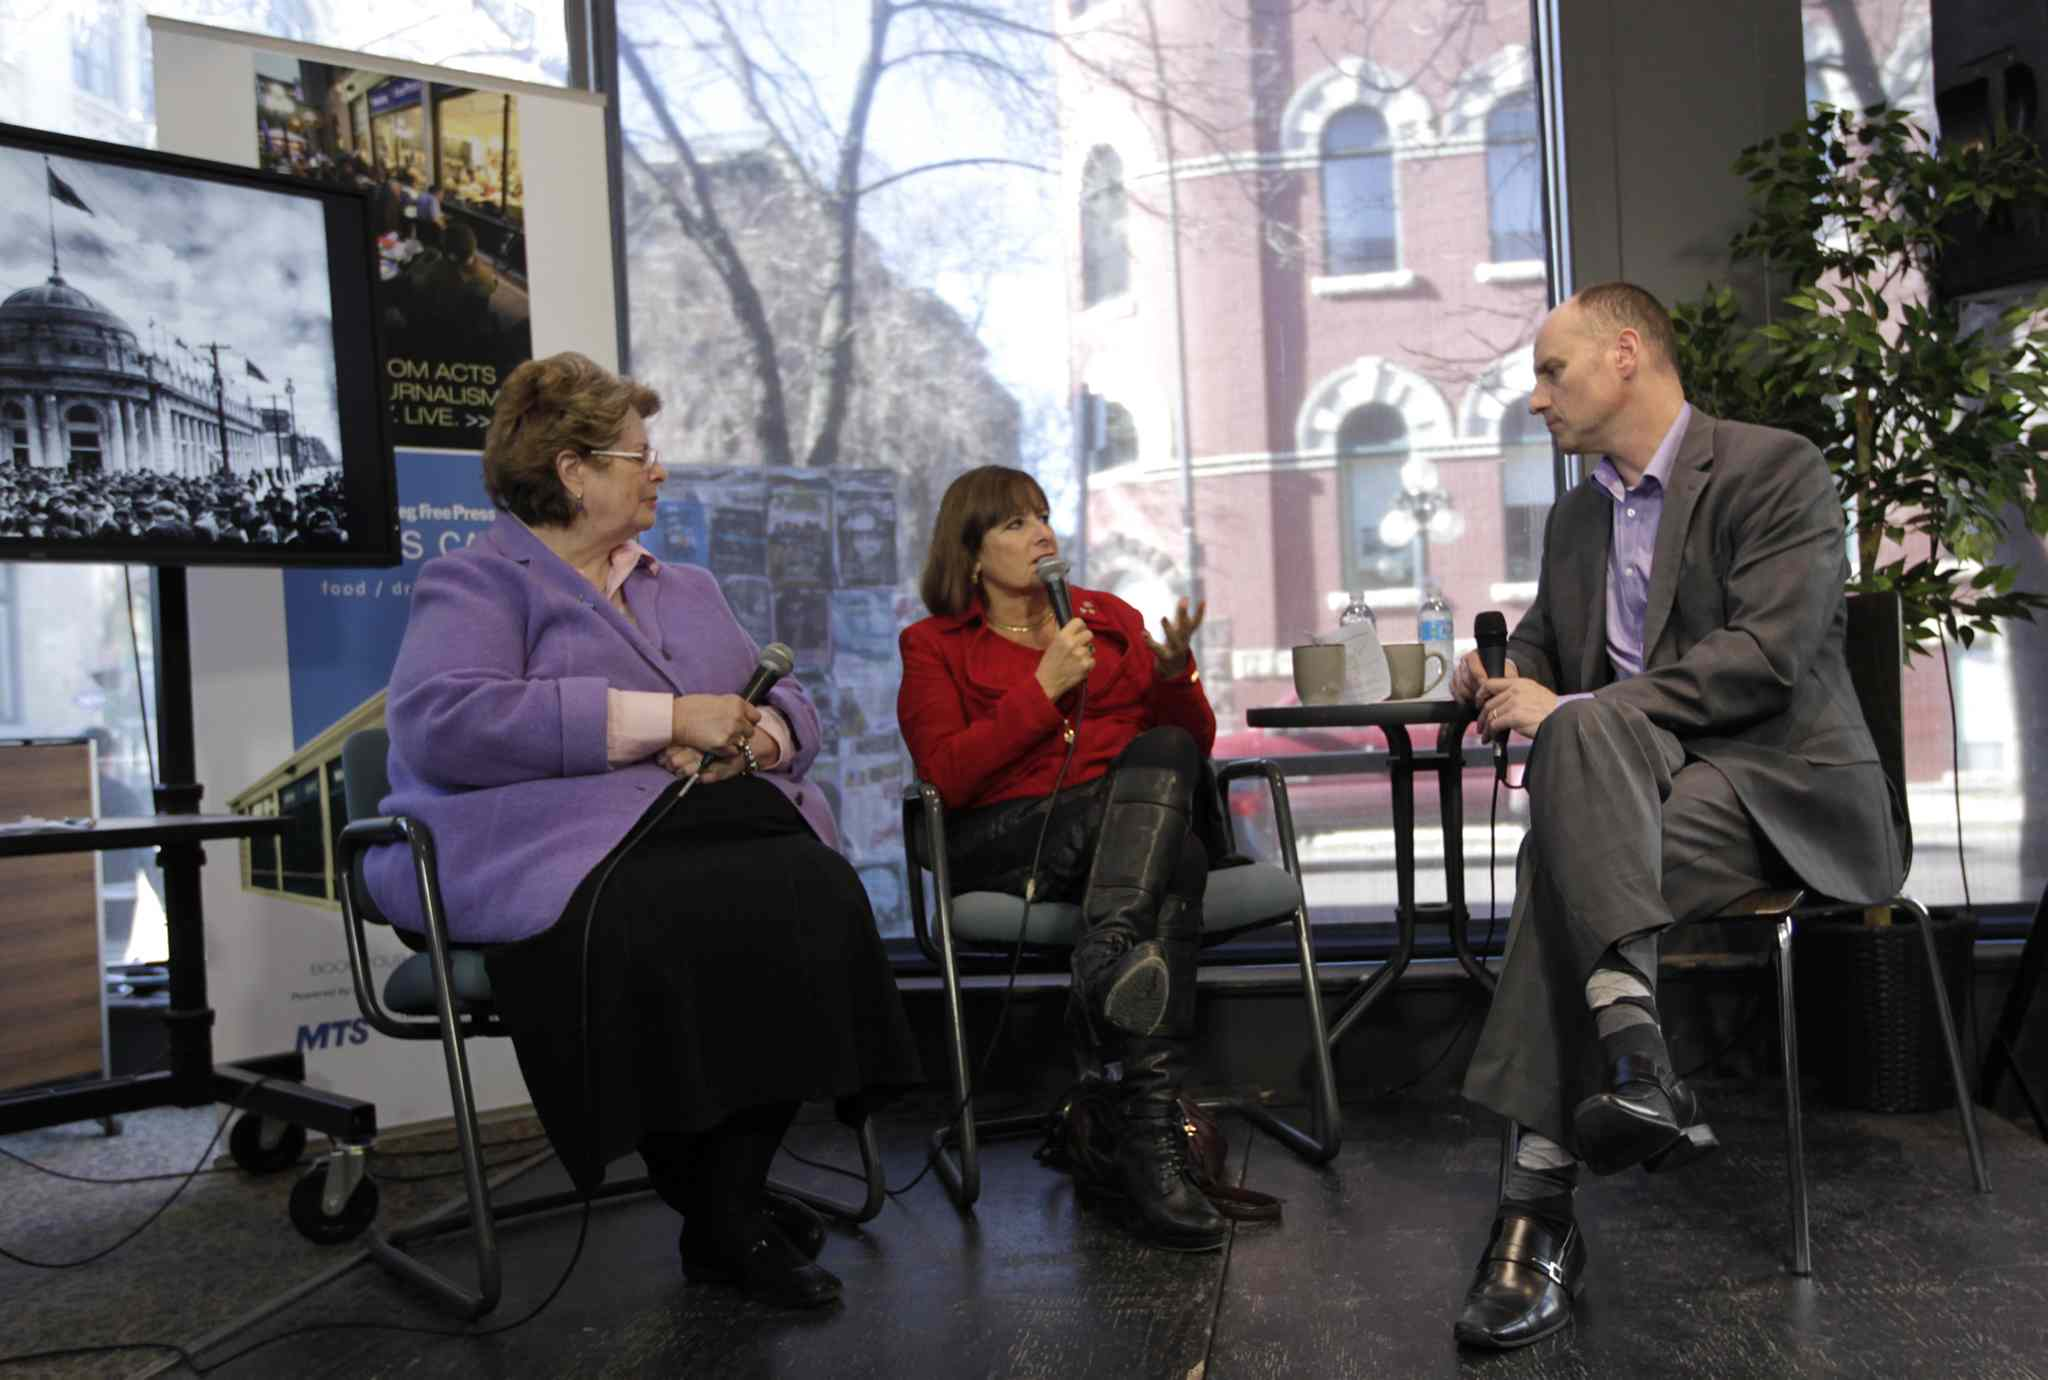 Editor Paul Samyn moderates City Beautiful panel at the News Café Monday with Susan Thompson (left) and Gail Asper.